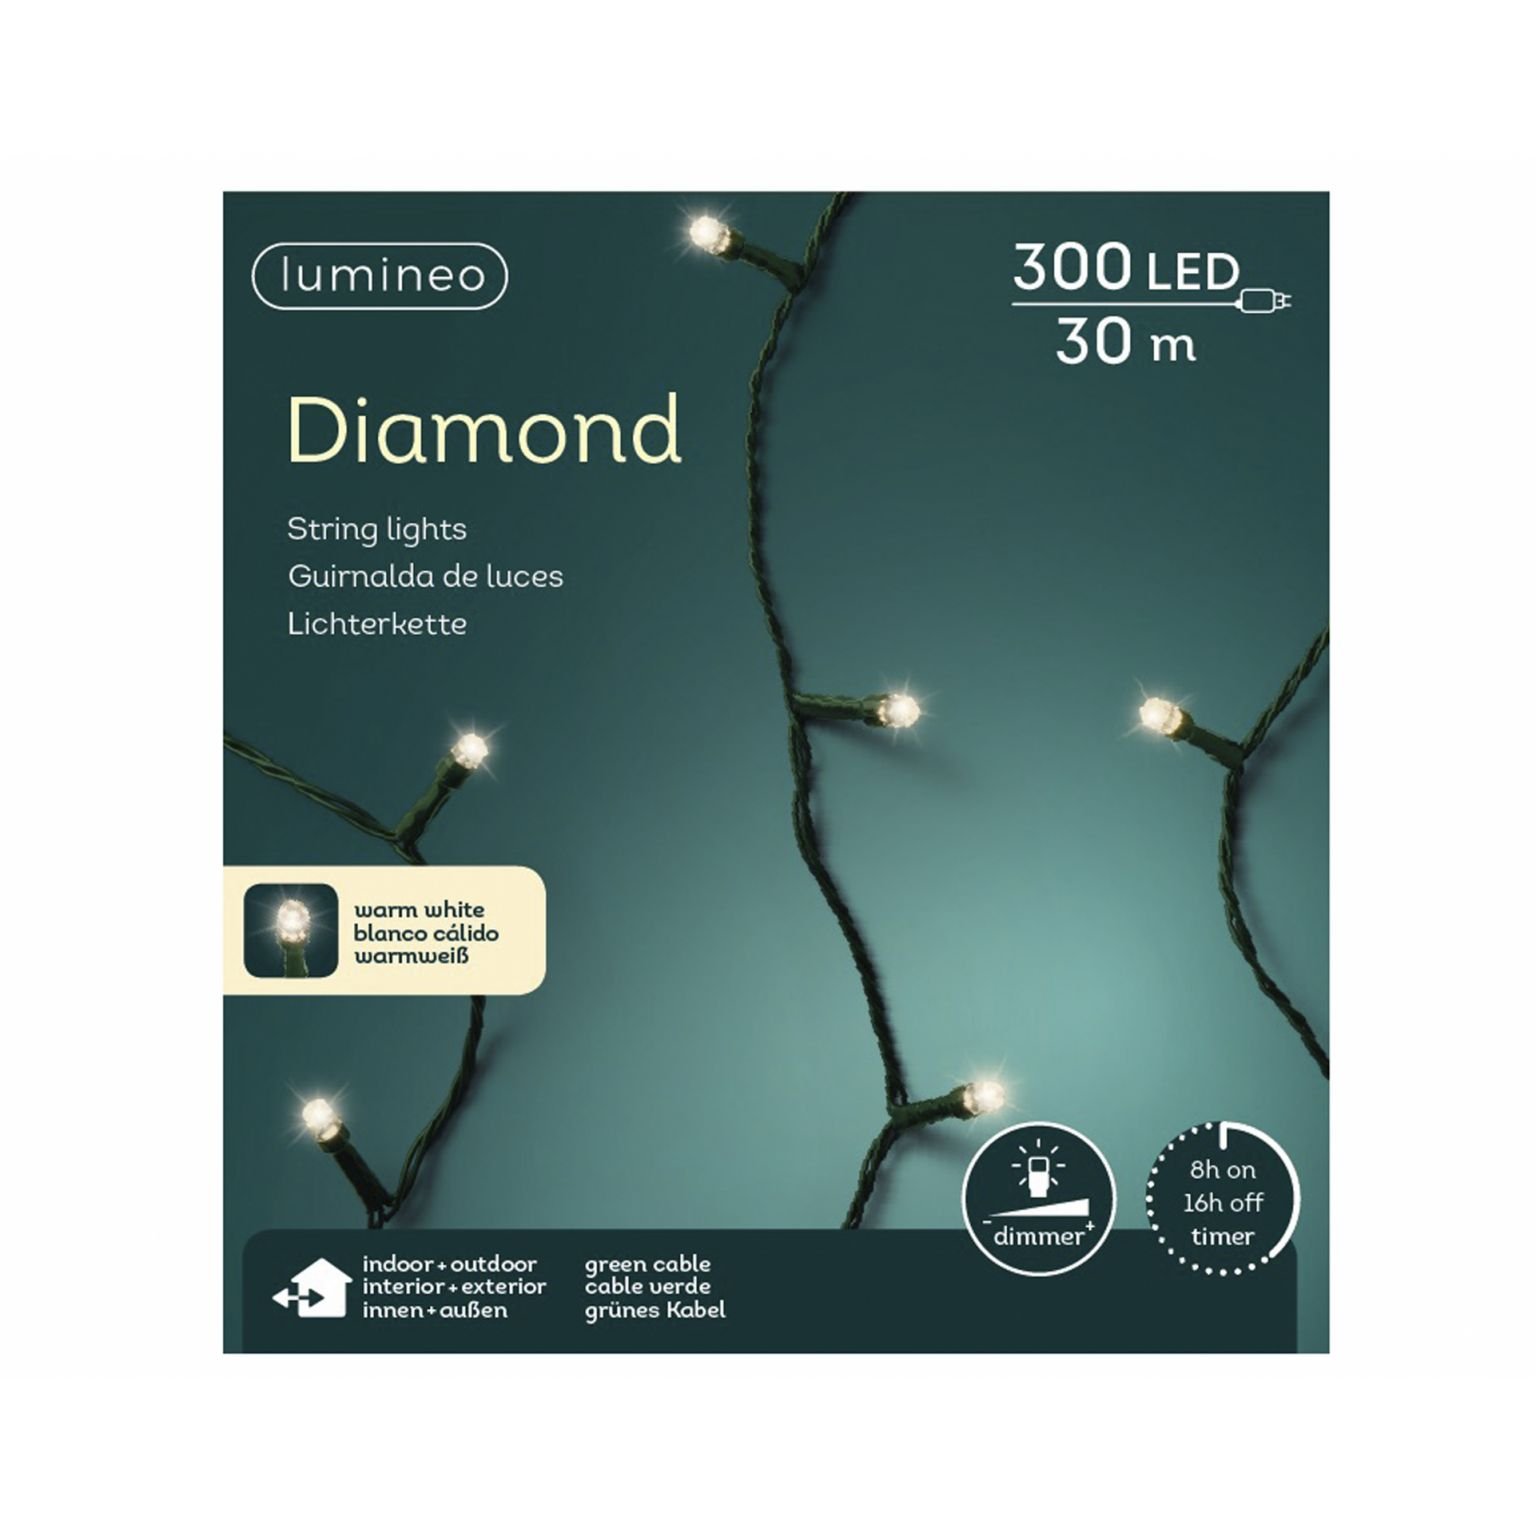 LED diamondverlichting lumineo 300 lamps 'warm wit